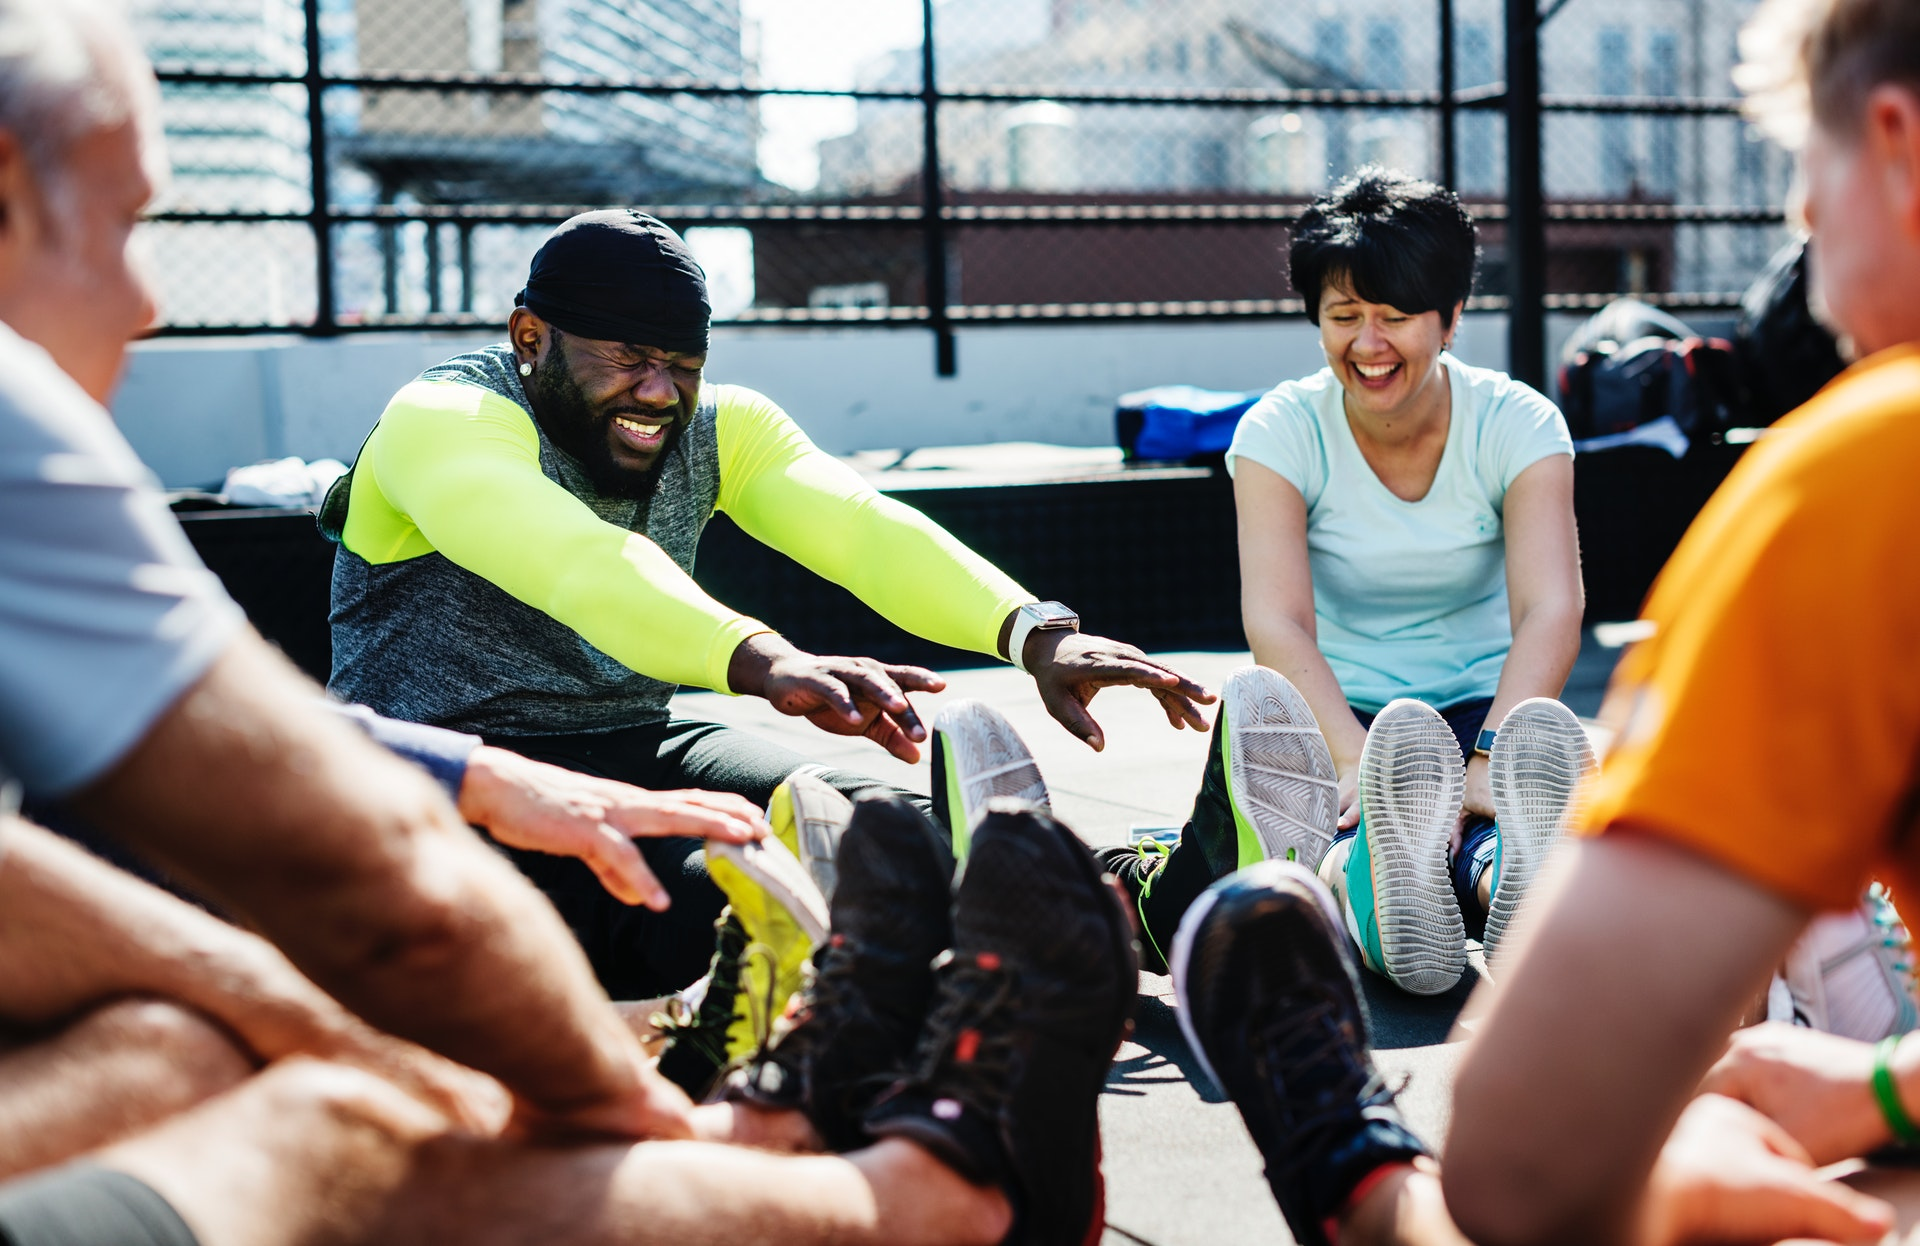 Athletes in need of exercise recovery tools